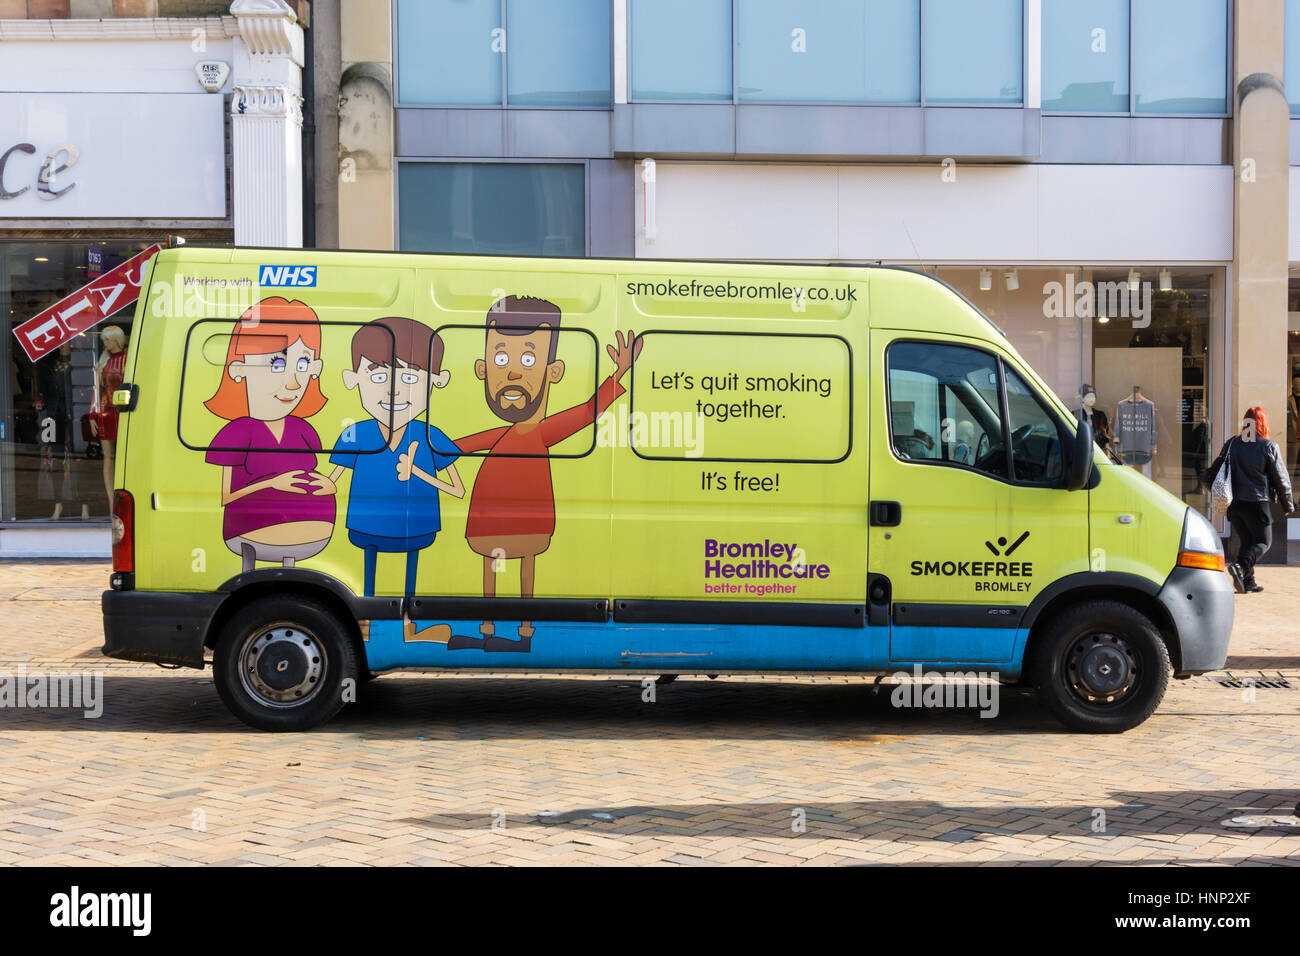 A Bromley Healthcare community health service van promotes an anti smoking campaign and offers people advice & - Stock Image